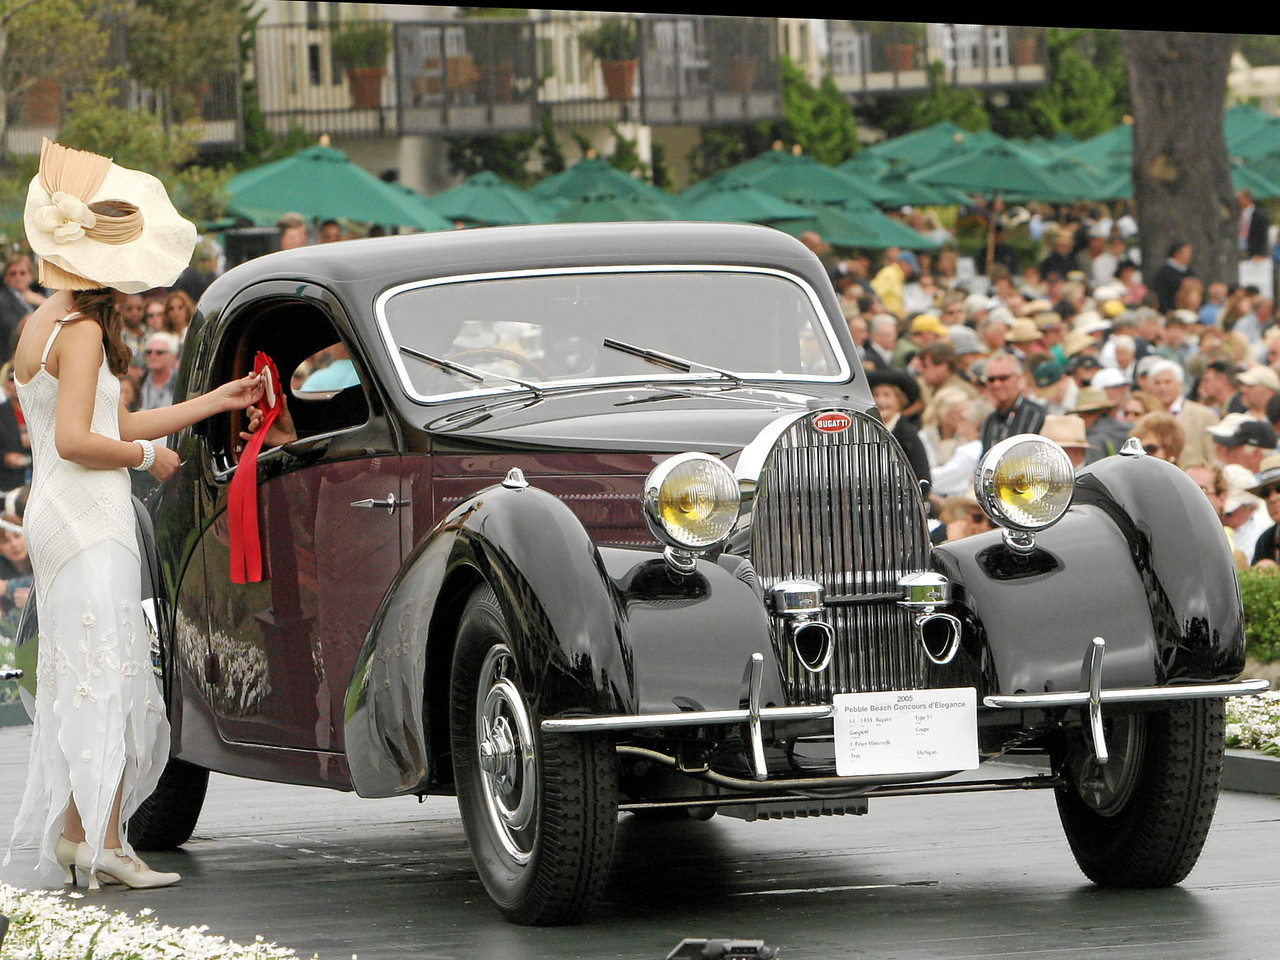 1938 Bugatti Type 57 Gangloff Coupé owned by J. Peter Ministrelli from Troy, Michigan 2nd Class J-1 (European Classic 1925-1939 Closed)